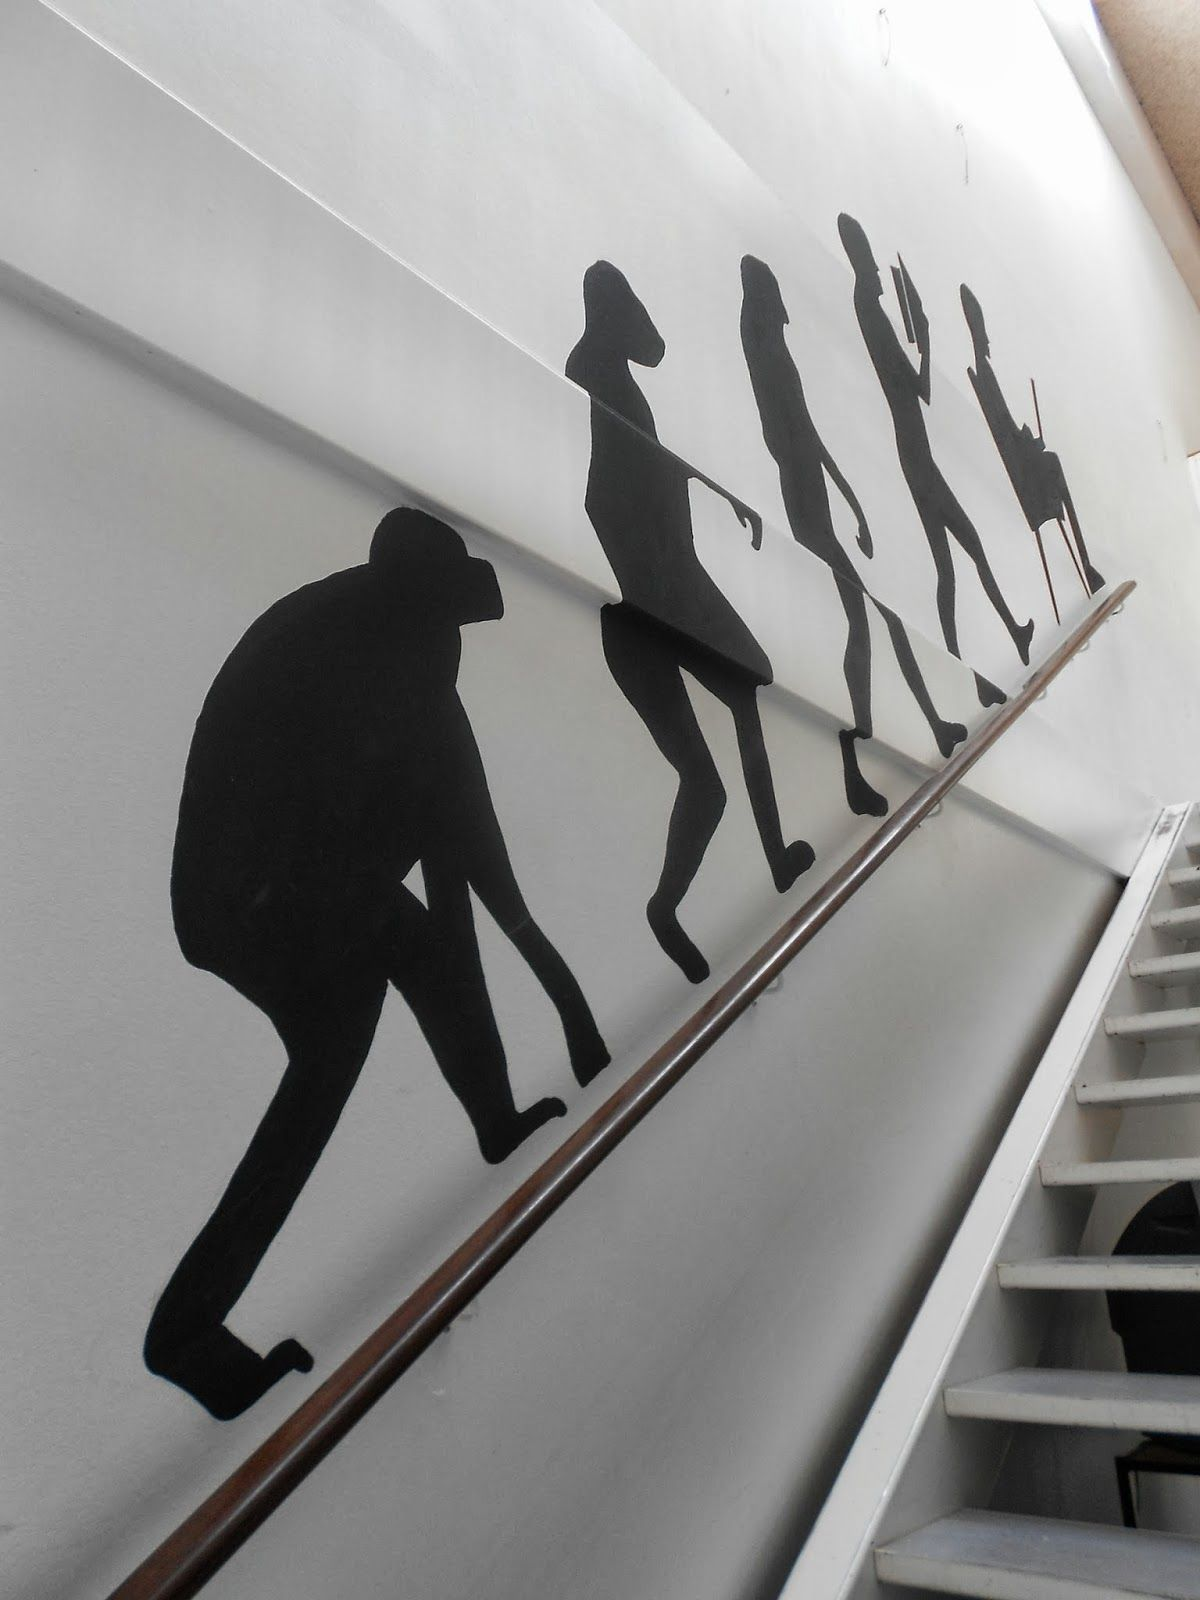 Evolution on the wall. Painting